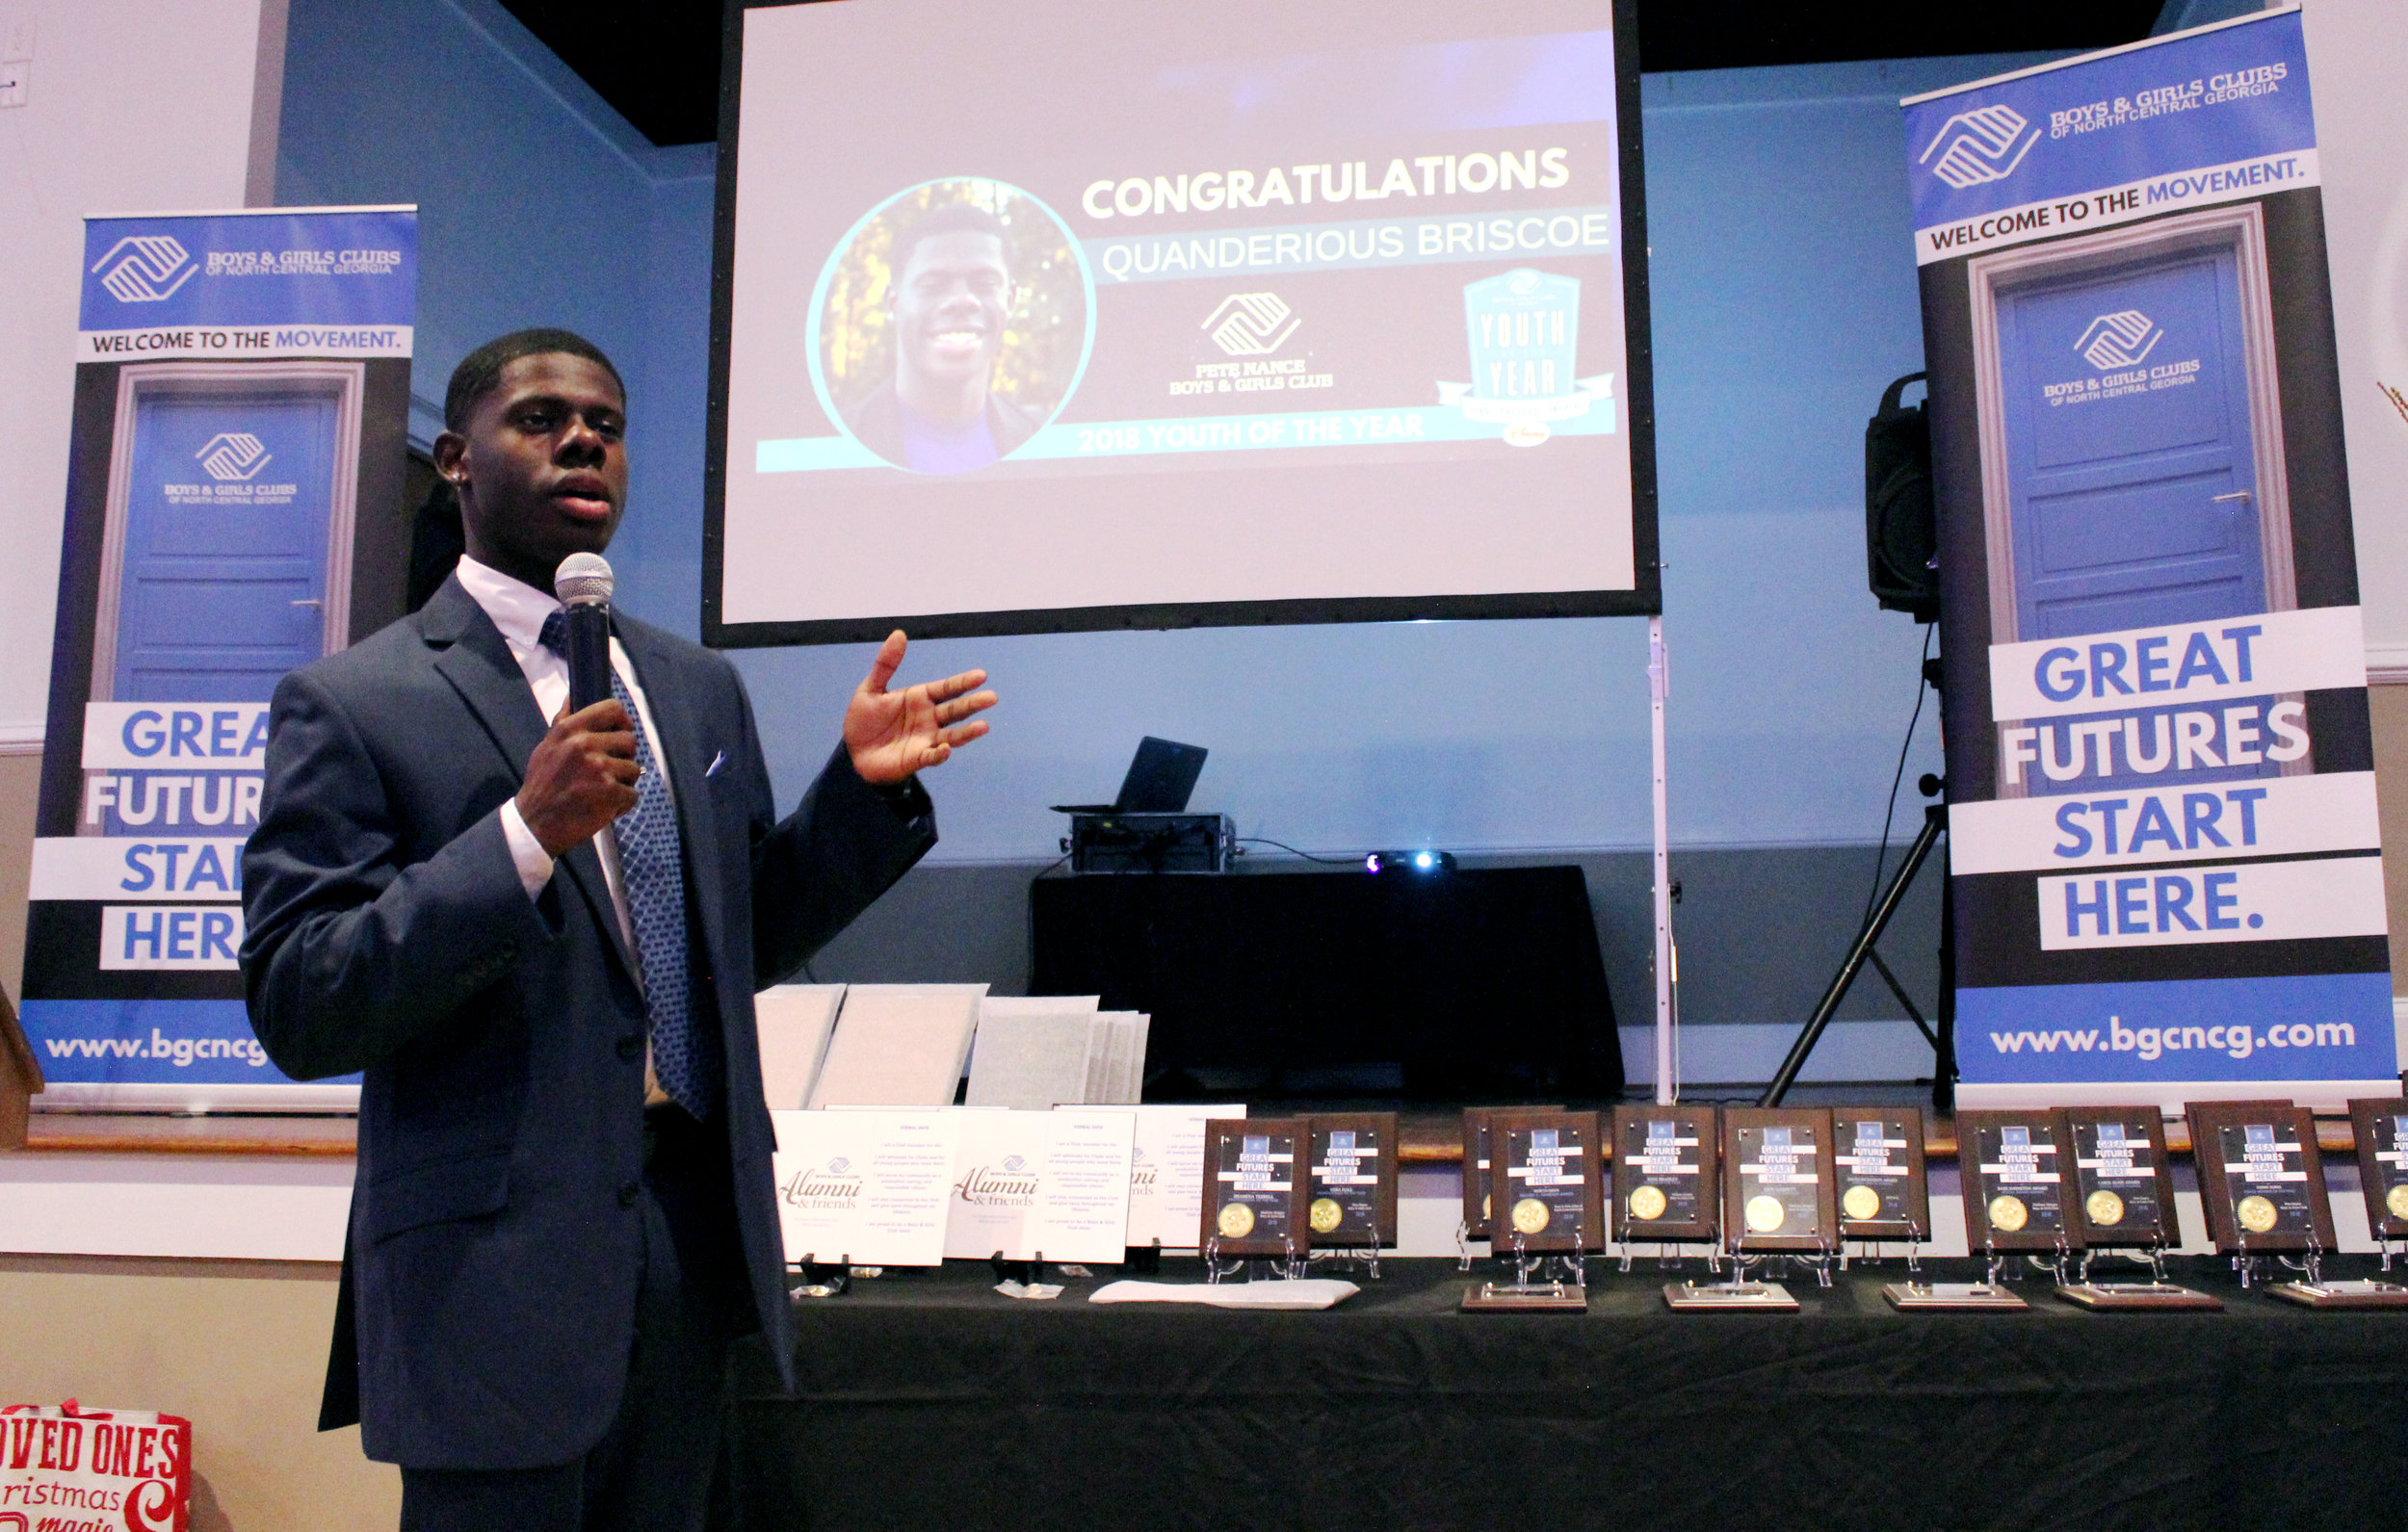 Quanderious Briscoe deliverers his powerful speech on how BGCNCG has impacted his life.